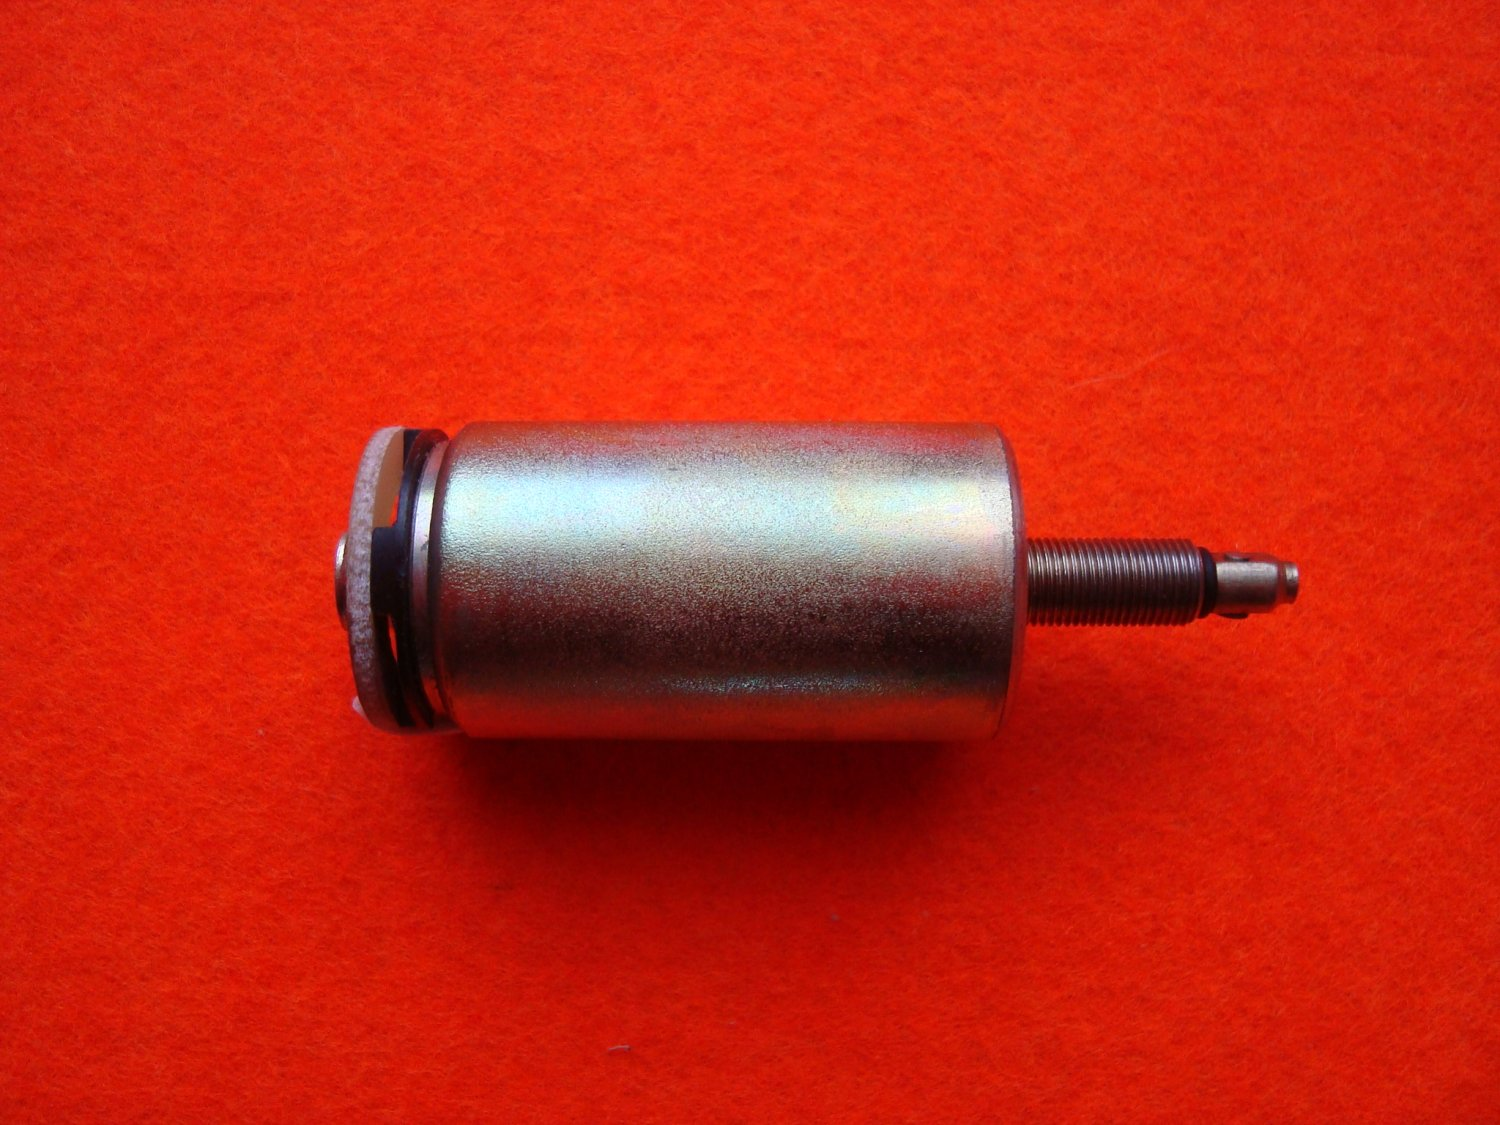 Electromagnet MP-661K Drozd, Blackbird to update the characteristics and parameters, made to order.